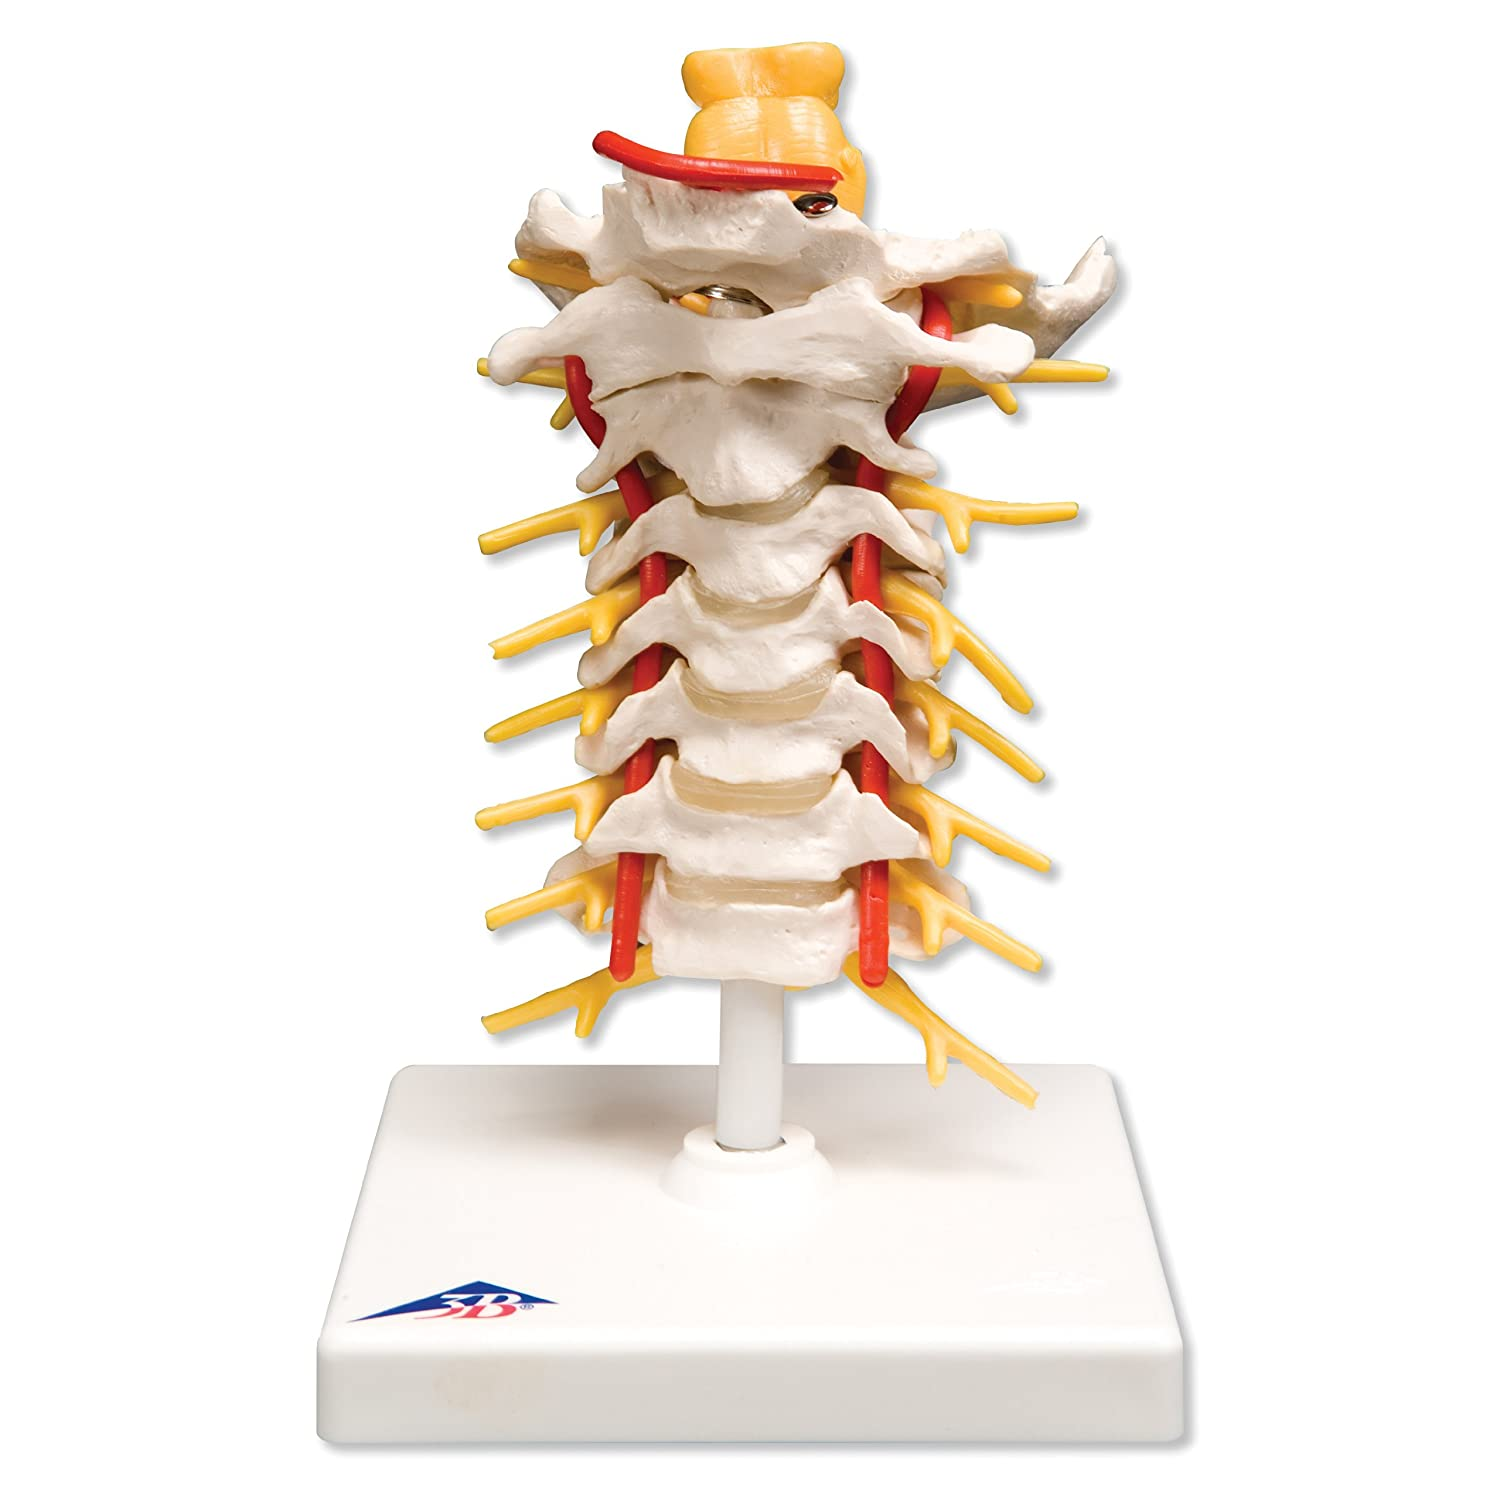 Cervical Vertebrae Model- Regional Spinal Series #1 of 3